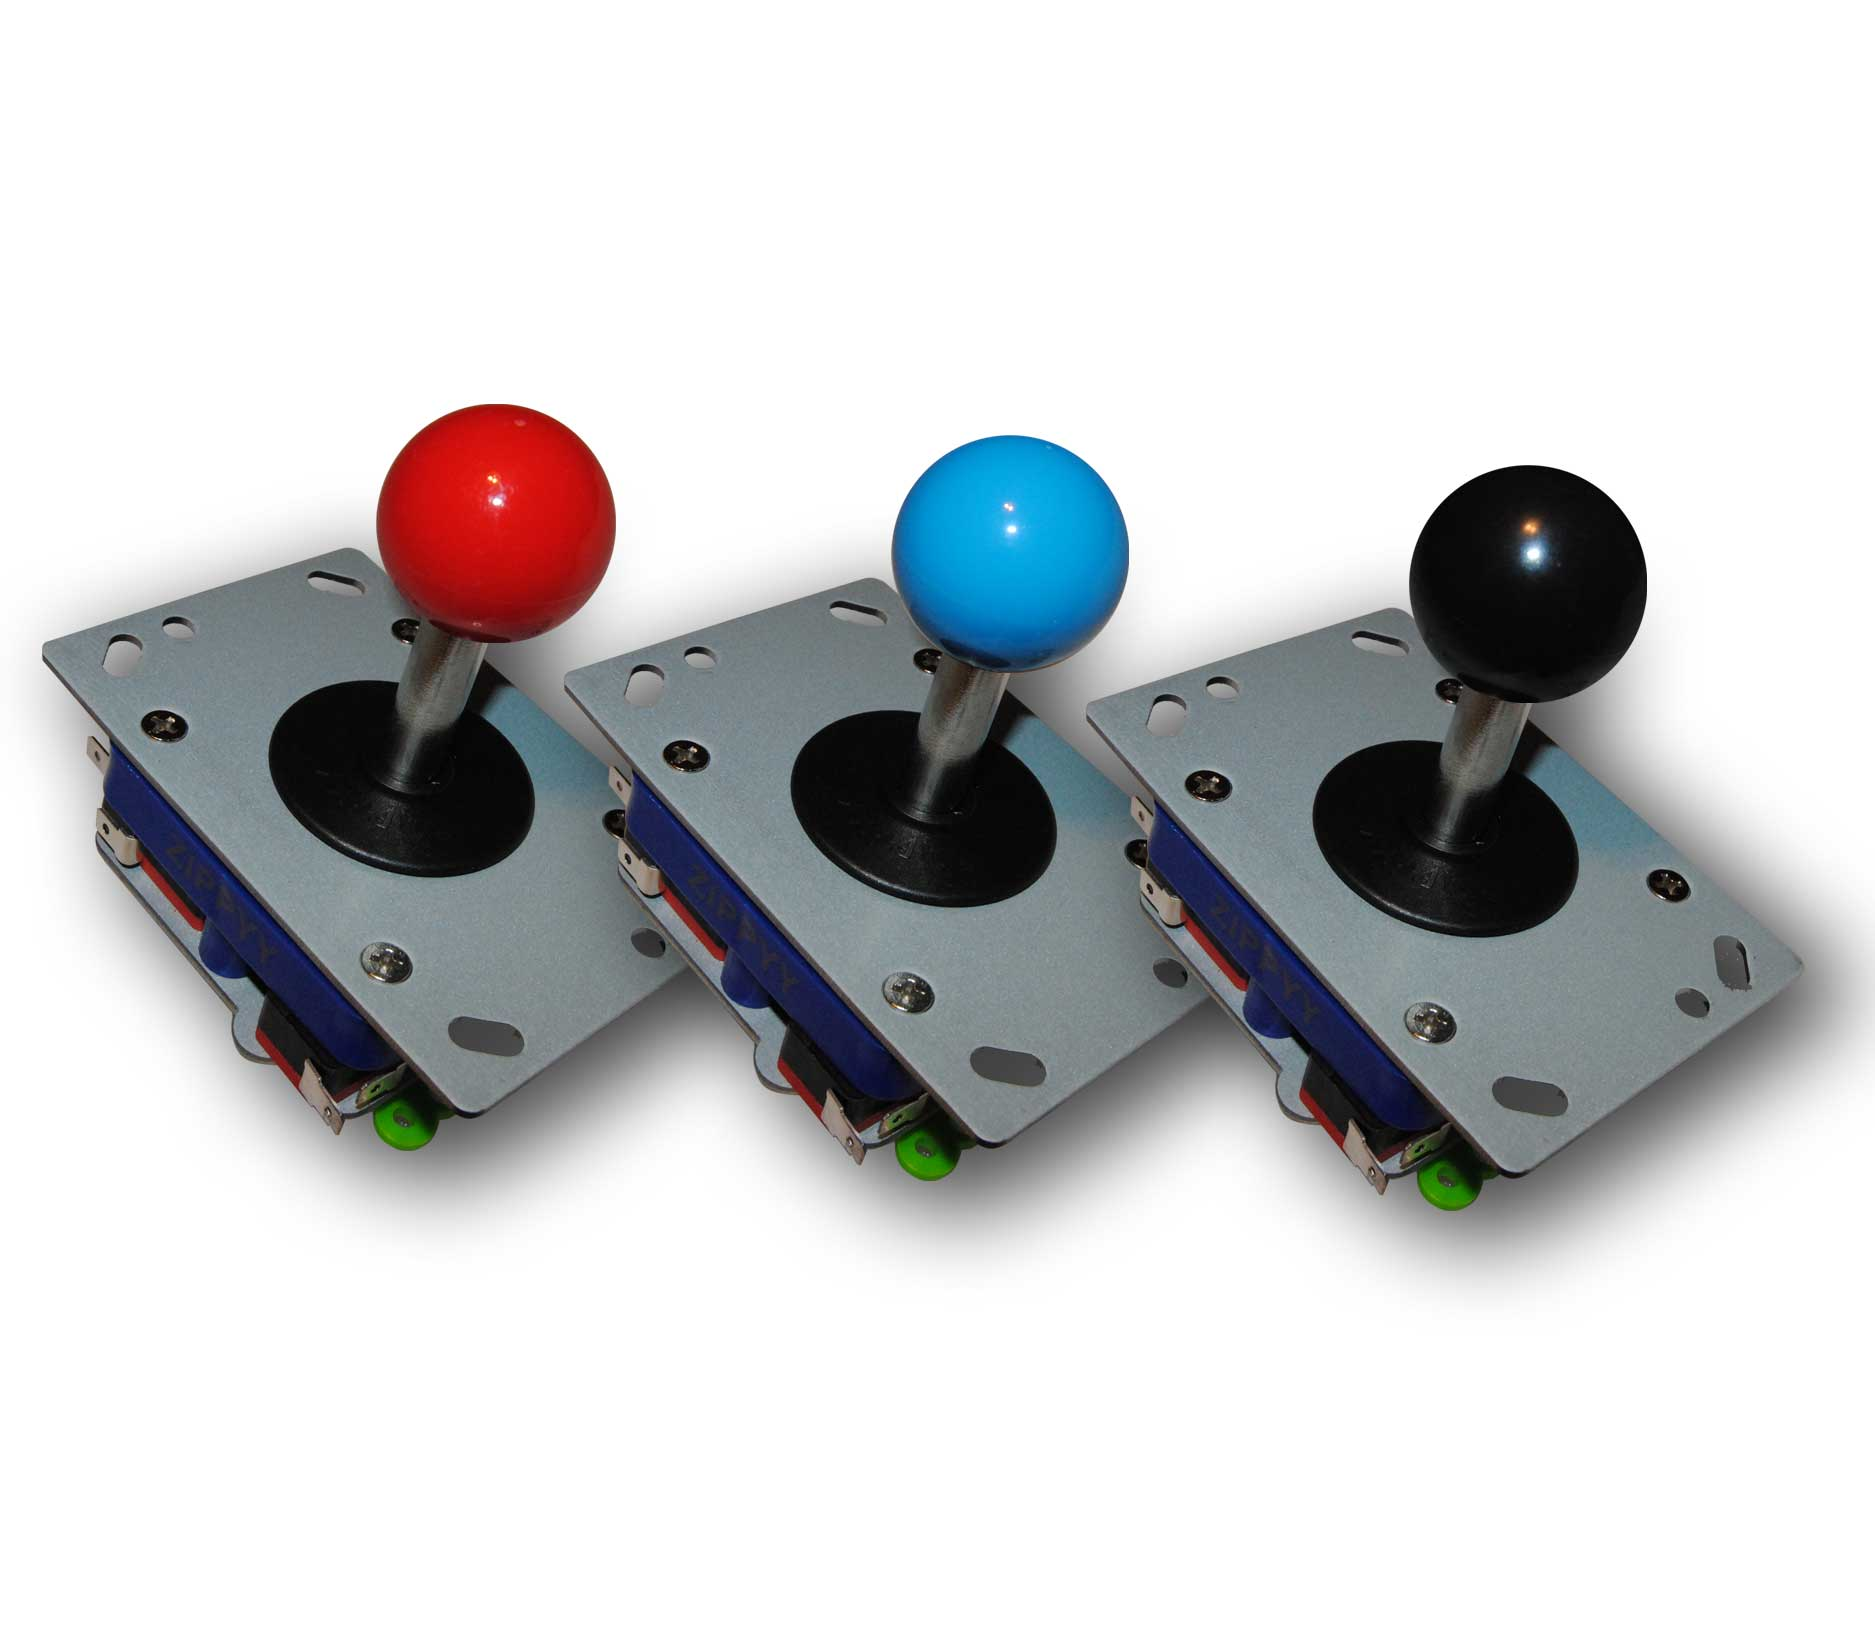 Zippy joysticks kurz